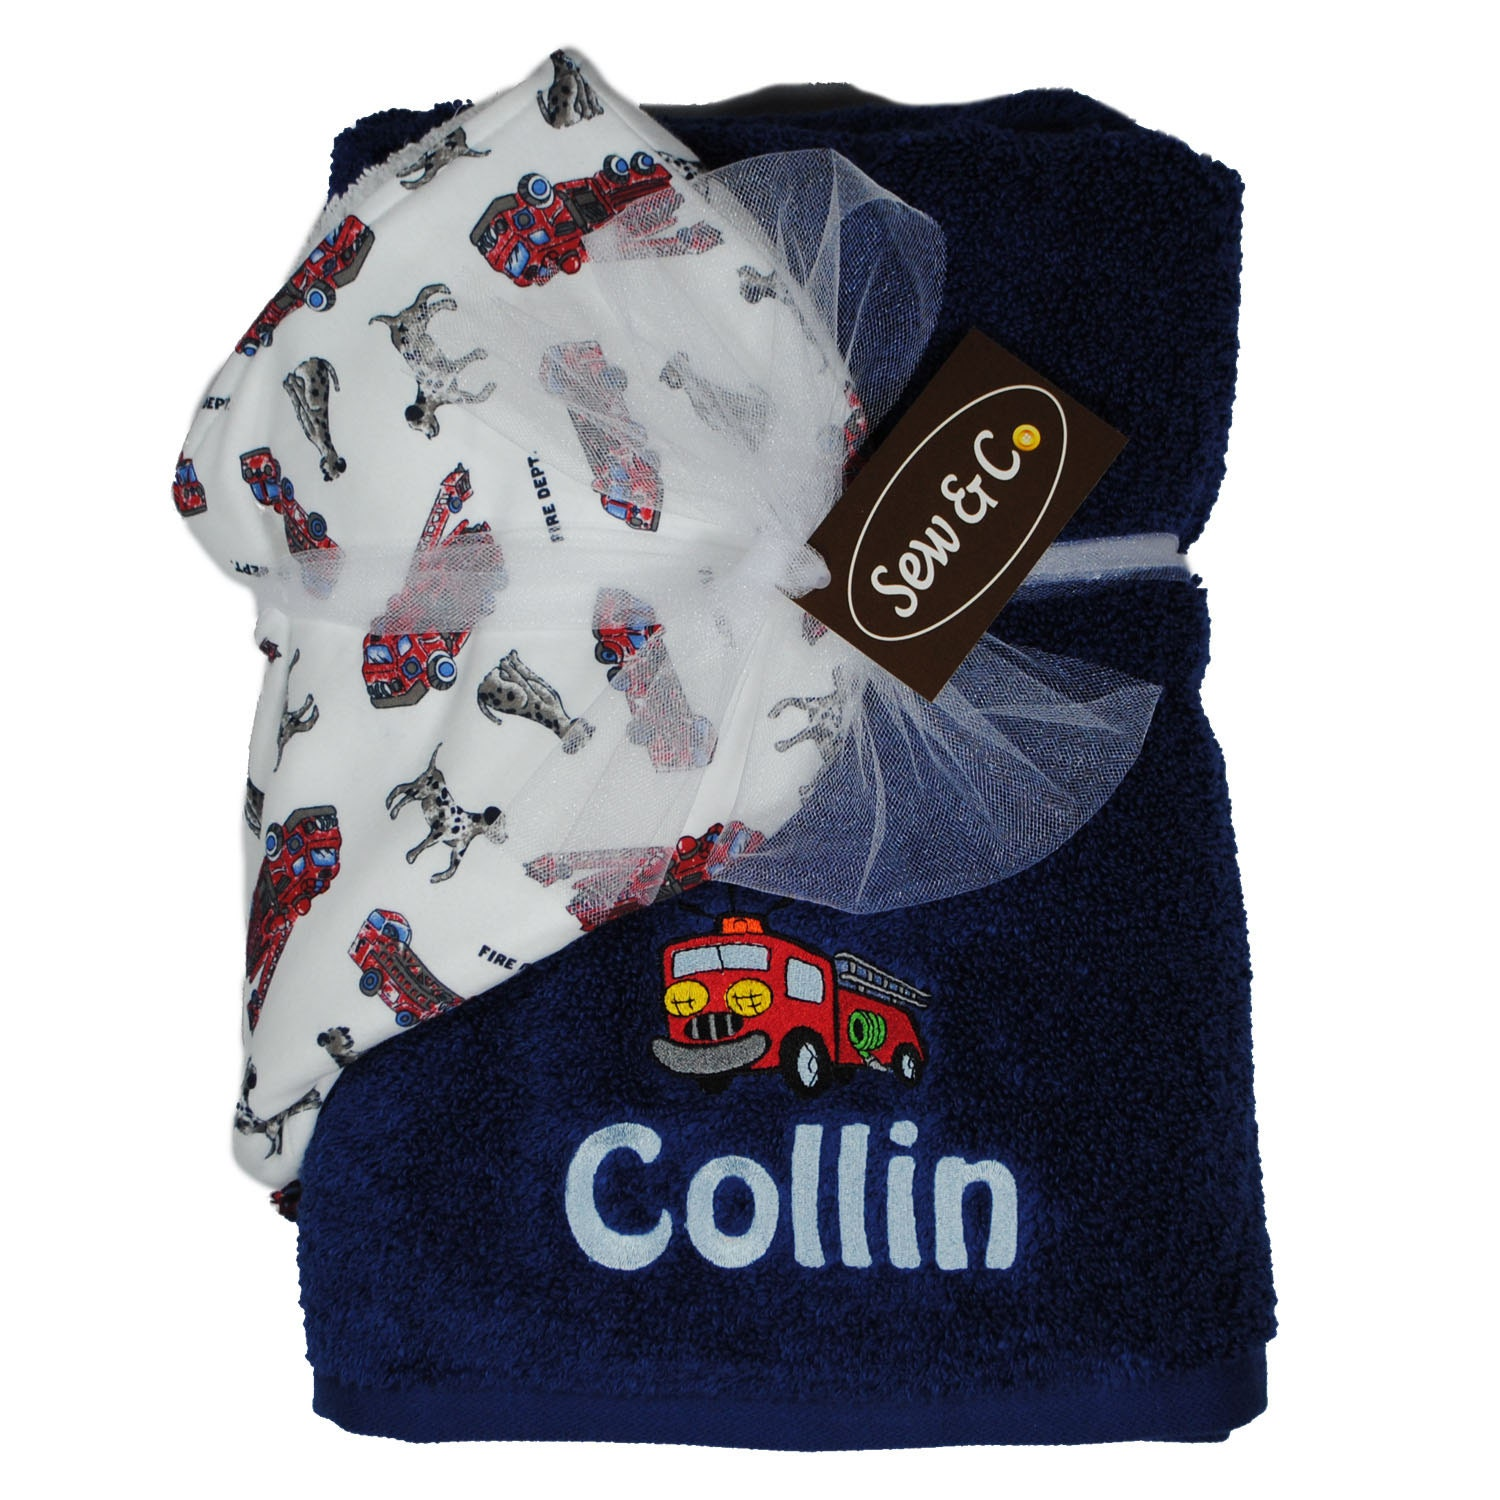 Embroidered Towels Custom: Custom Embroidered Hooded Bath Towel Fire Truck Theme